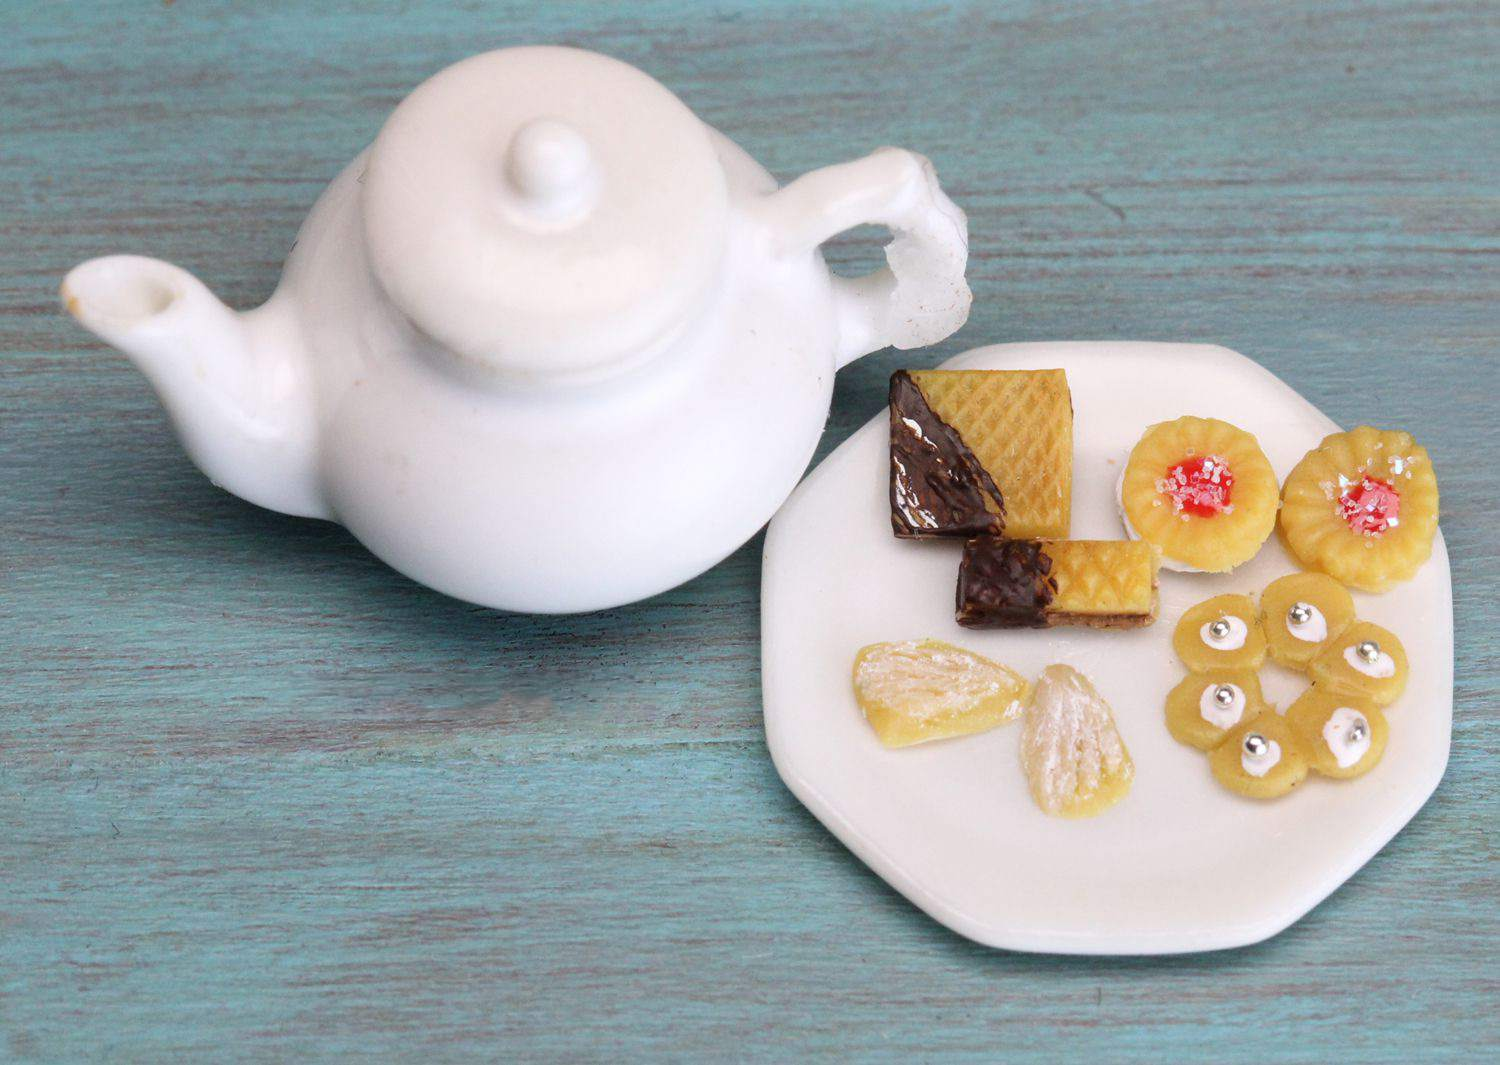 Distinctively textured and shaped mini cookies